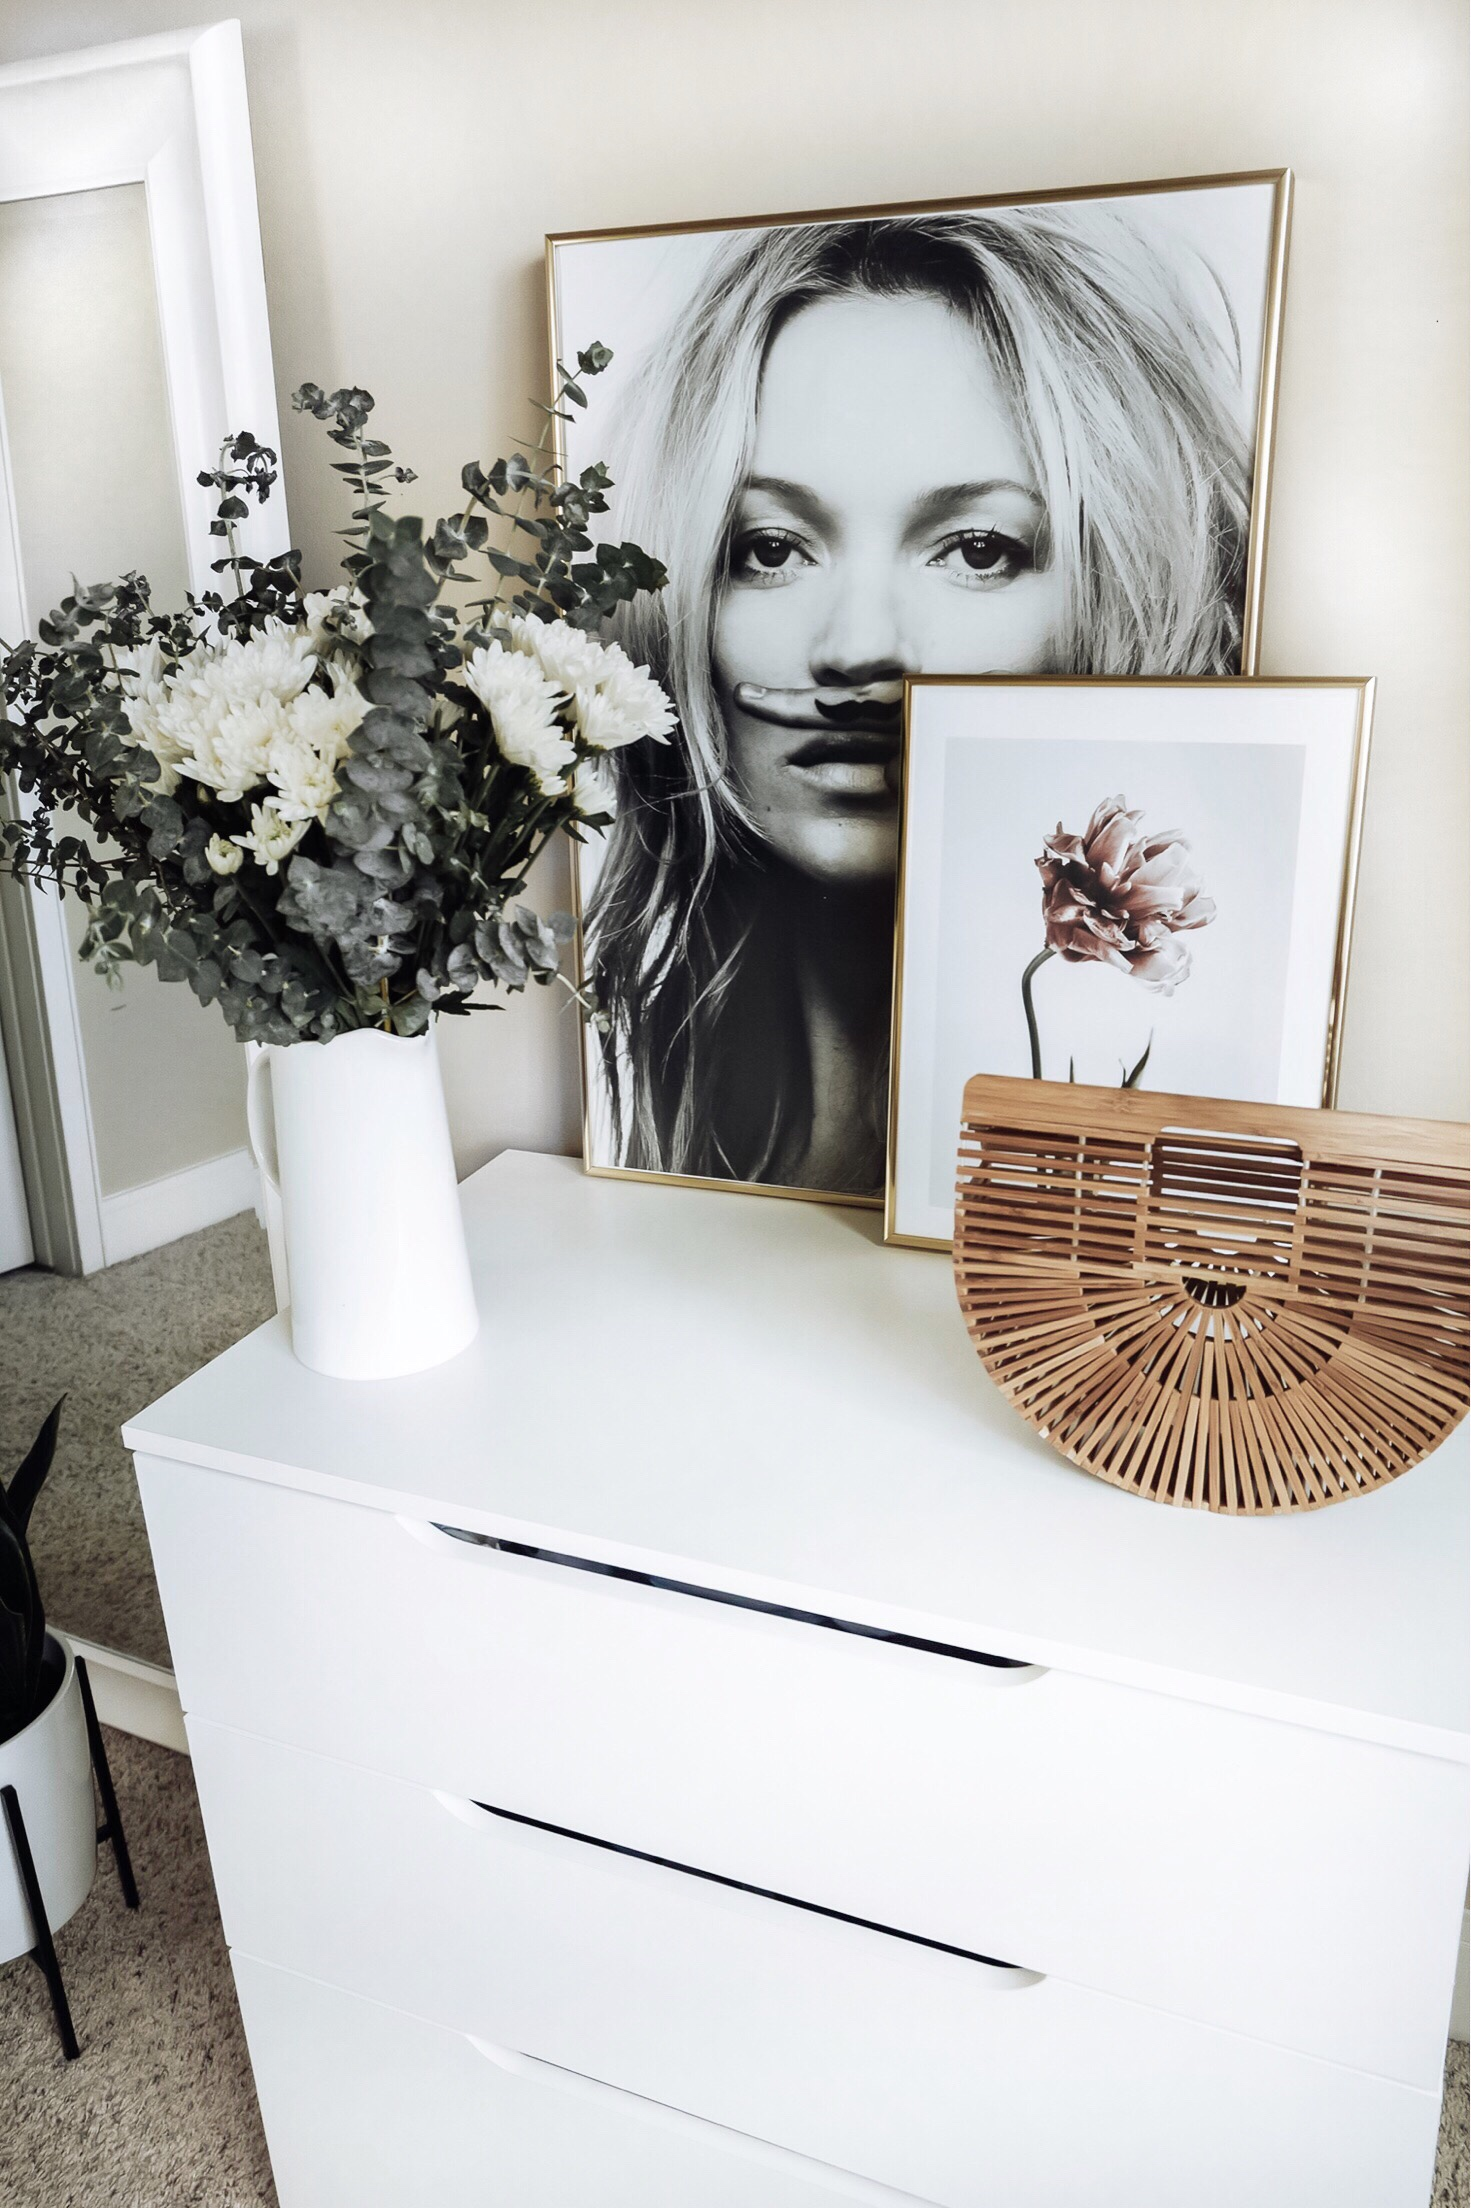 Tiffany Jais Houston fashion and lifestyle blogger | Friday feels | Deseno art prints Kate Moss, Life is a joke print | Pink Tulip Print, home decor  |